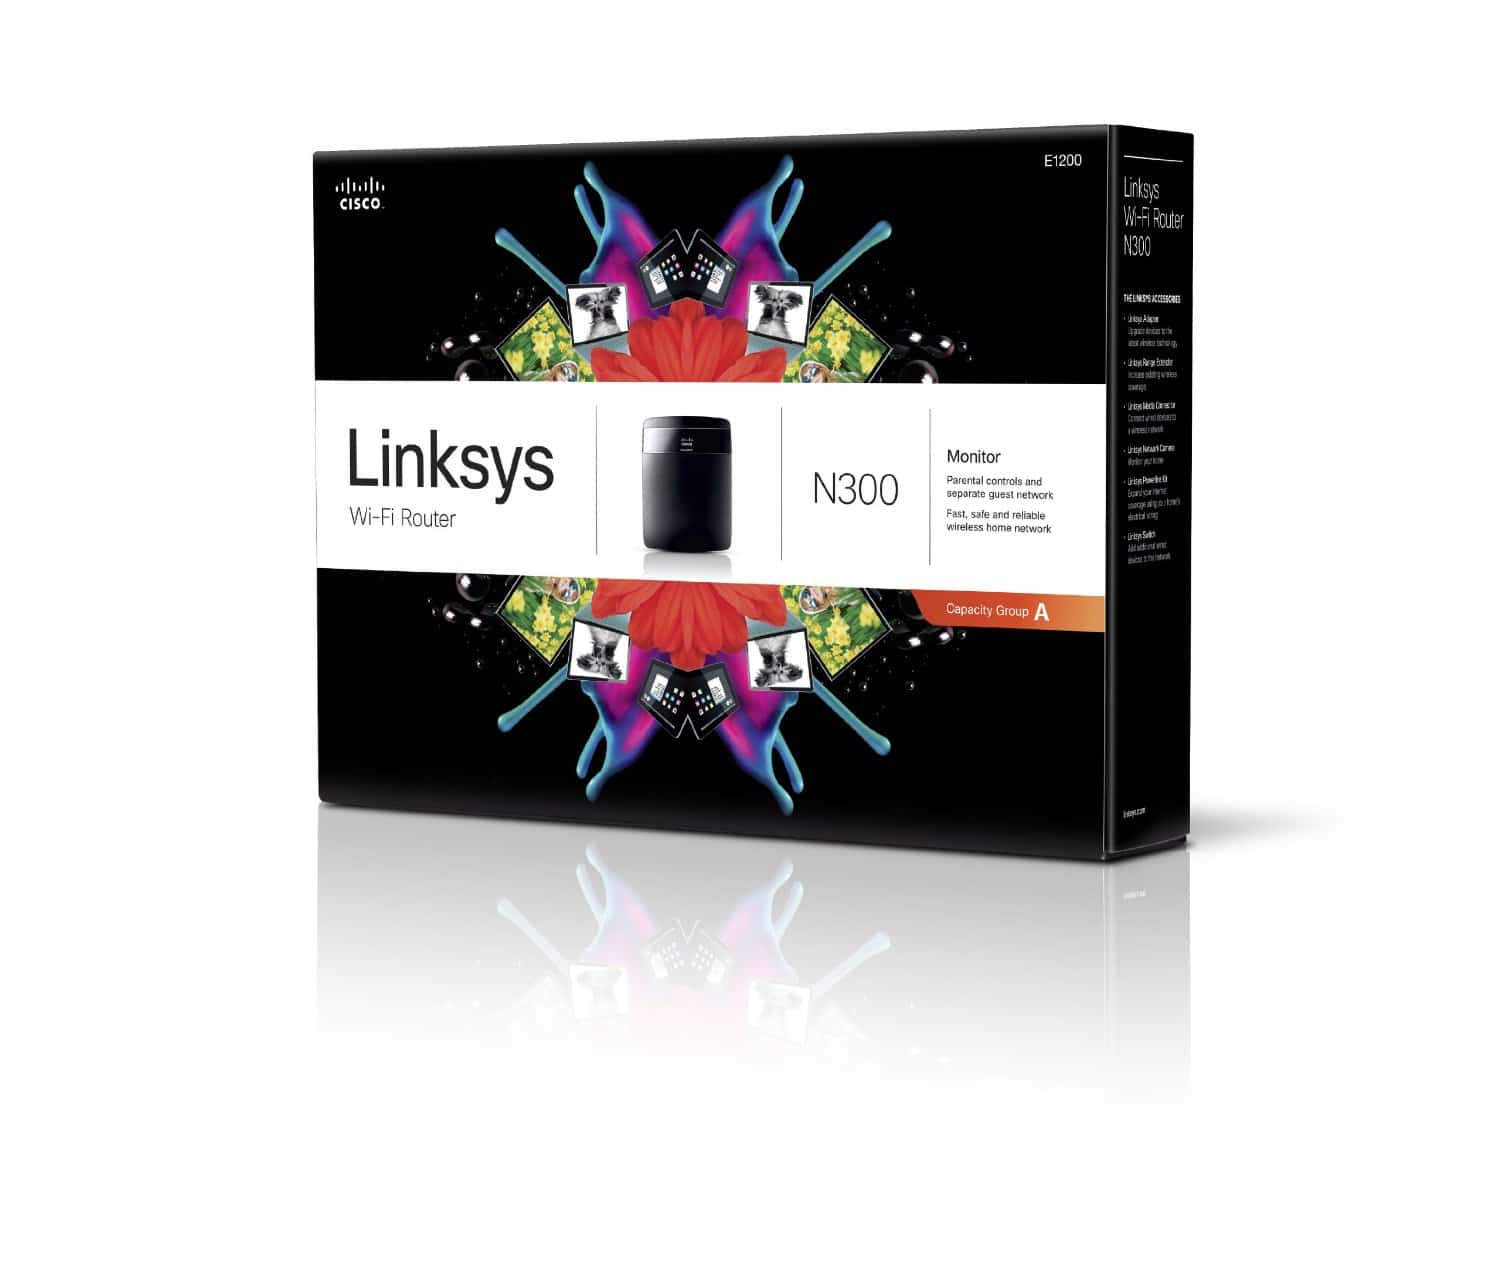 Linksys E1200 N300 Wireless Router Reviewed